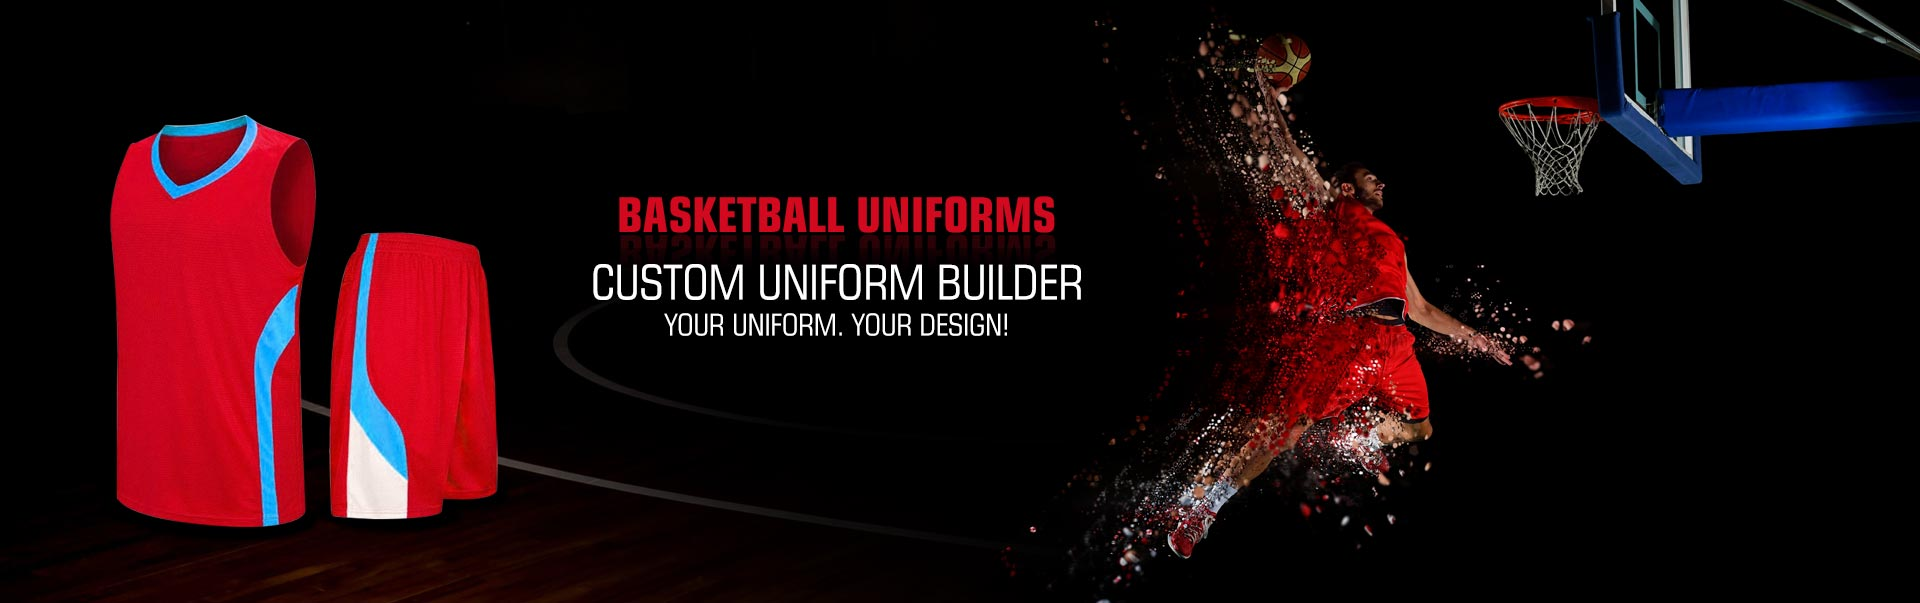 Basketball Uniforms Wholesaler, Suppliers in Bochum